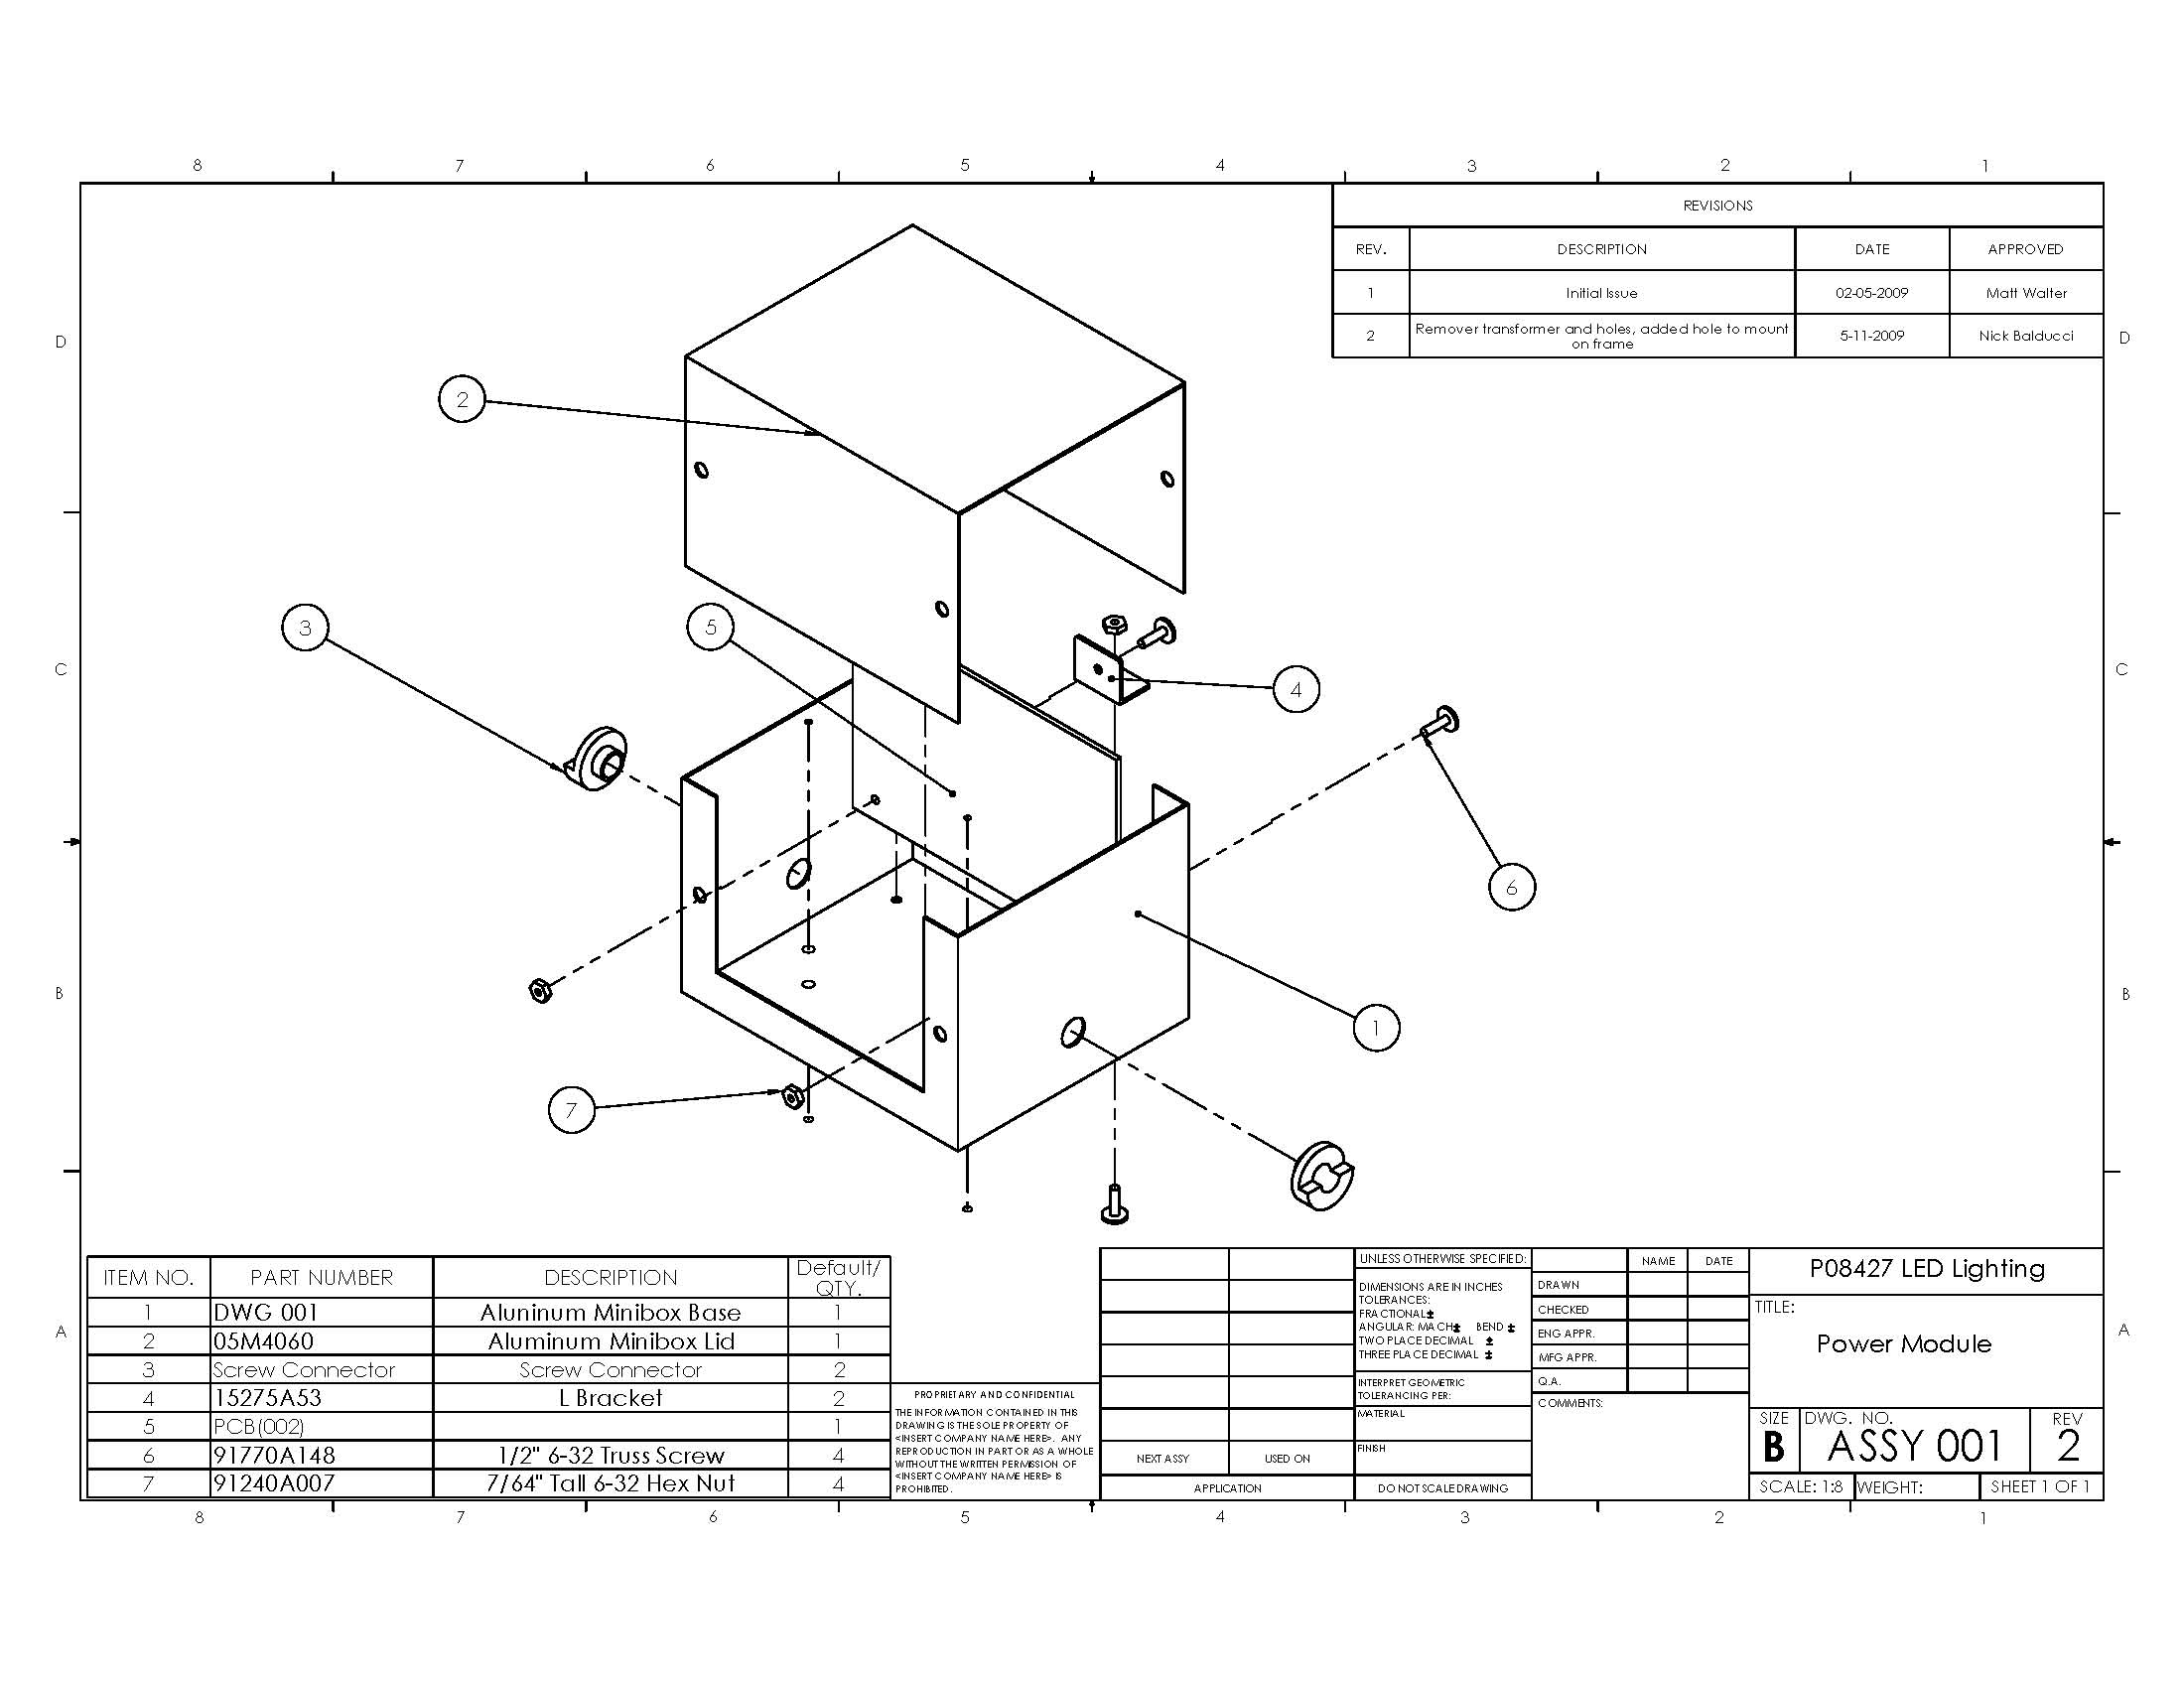 p08427 engineering schematics power module